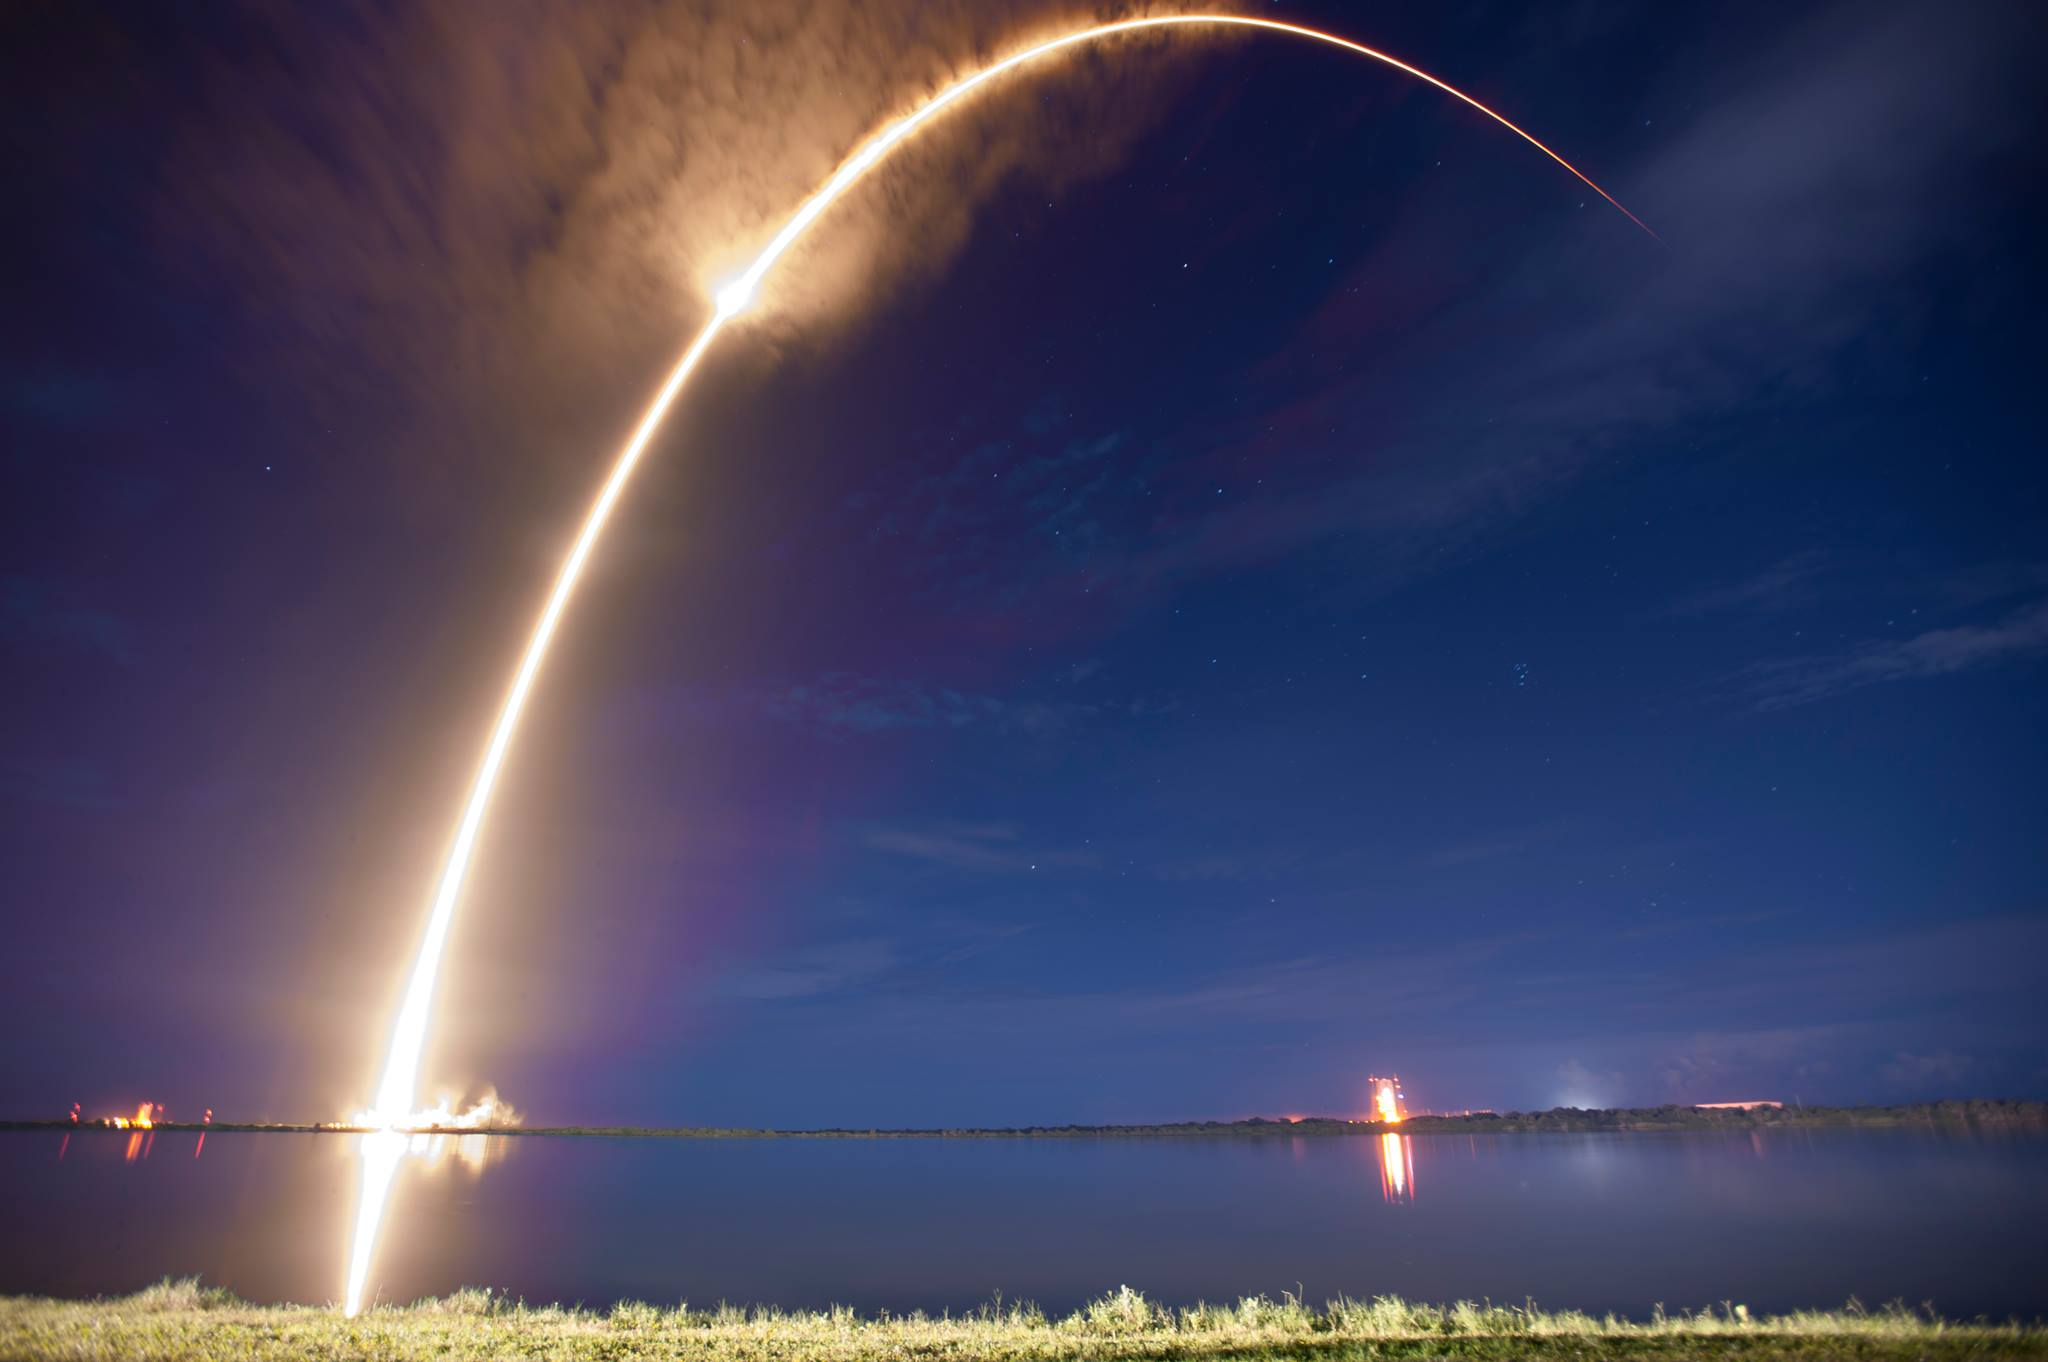 SpaceX Fakcn 9 launches from KSC during the AAF 4th District Summer 14 Conference in Cocoa Beach